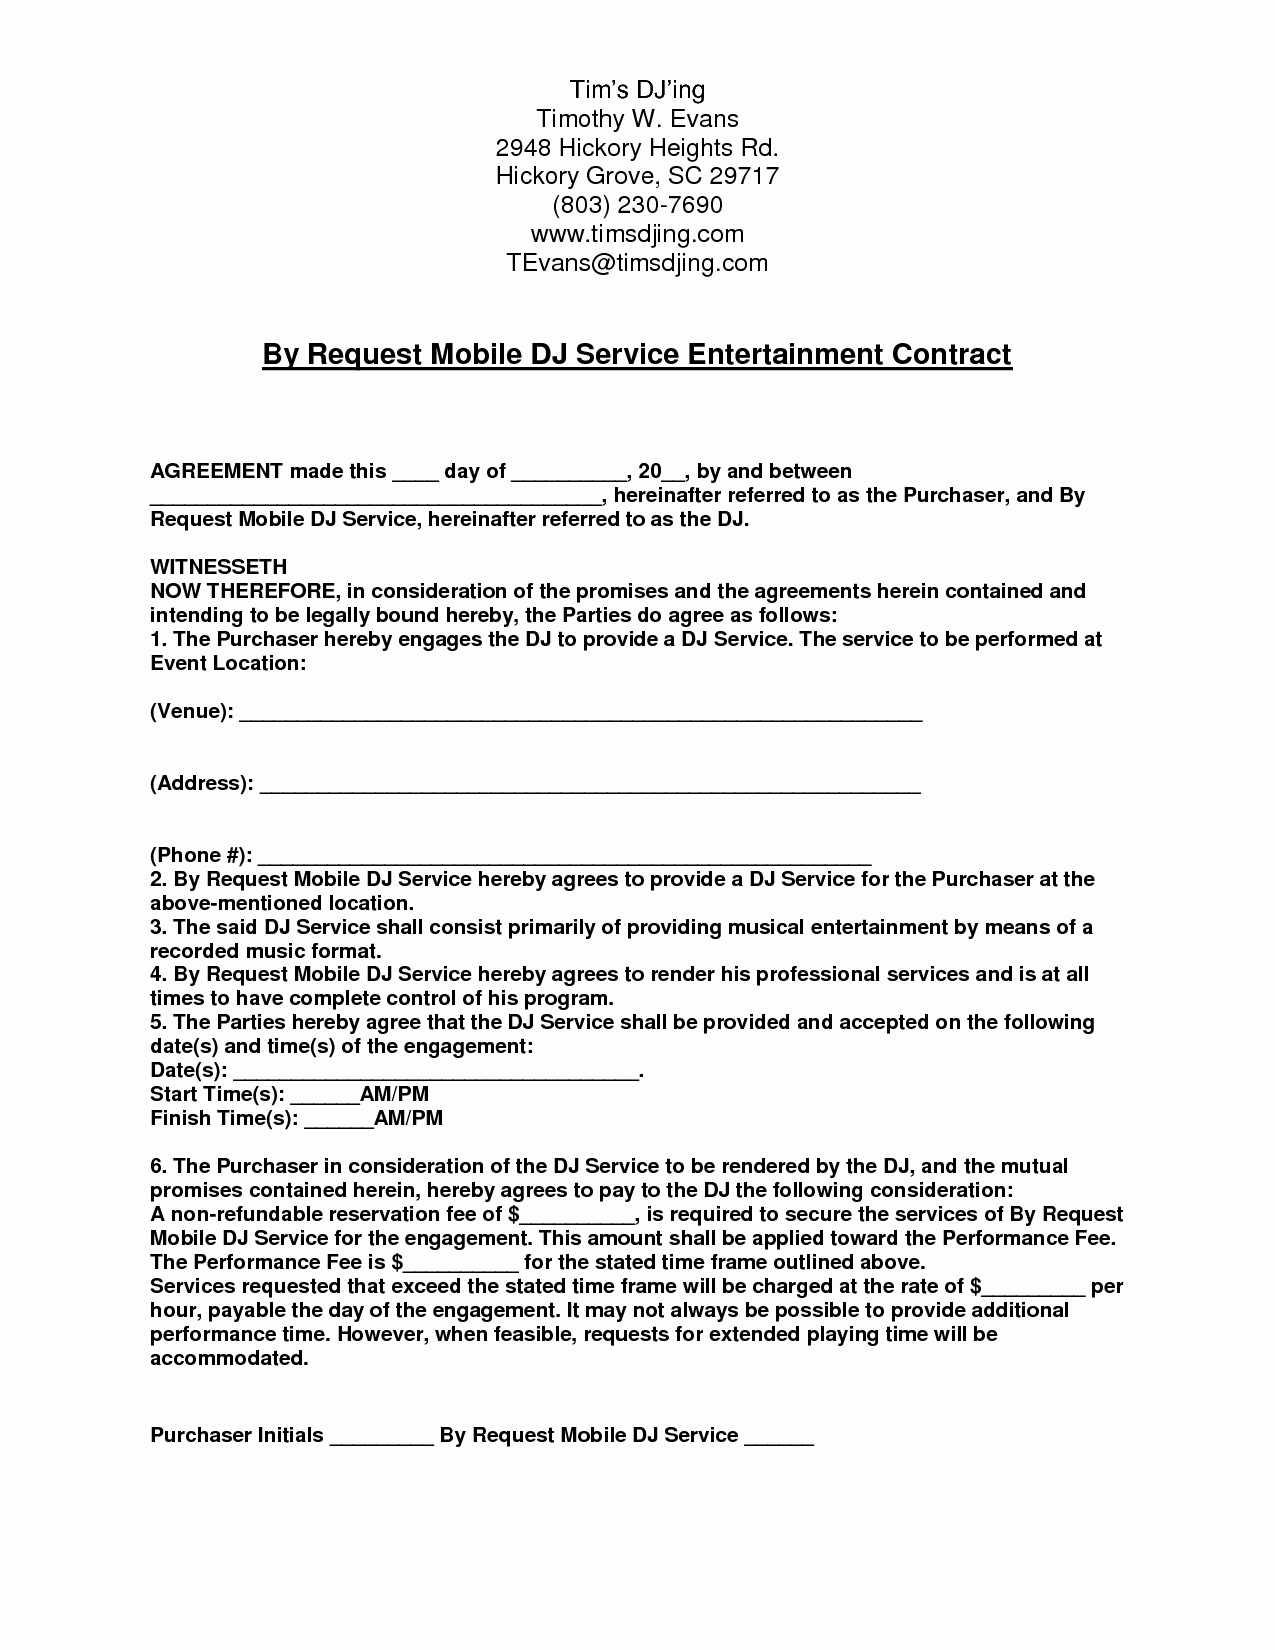 Disc Jockey Contracts Template Beautiful Mobile Dj Contract by Request Mobile Dj Service Entertainment Contract Pdf Pdf